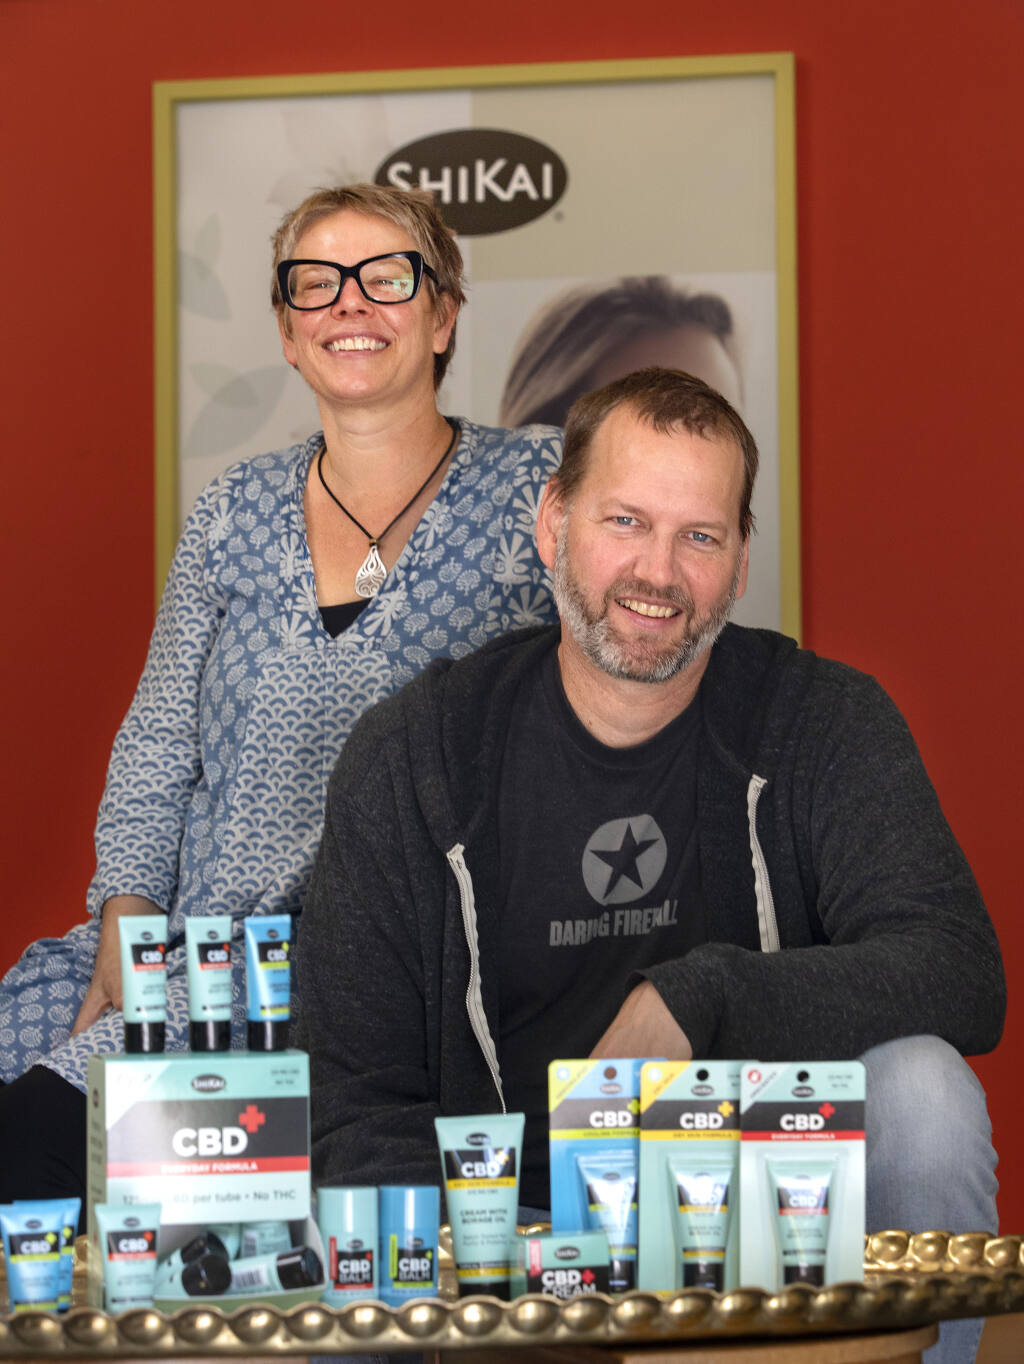 ShiKai President Jason Sepp and his sister and VP, Hilary Sepp, continue innovating the company their father started five years ago with a line of CBD topical balms and creams. Photo taken on Aug. 26, 2020. (John Burgess / The Press Democrat)